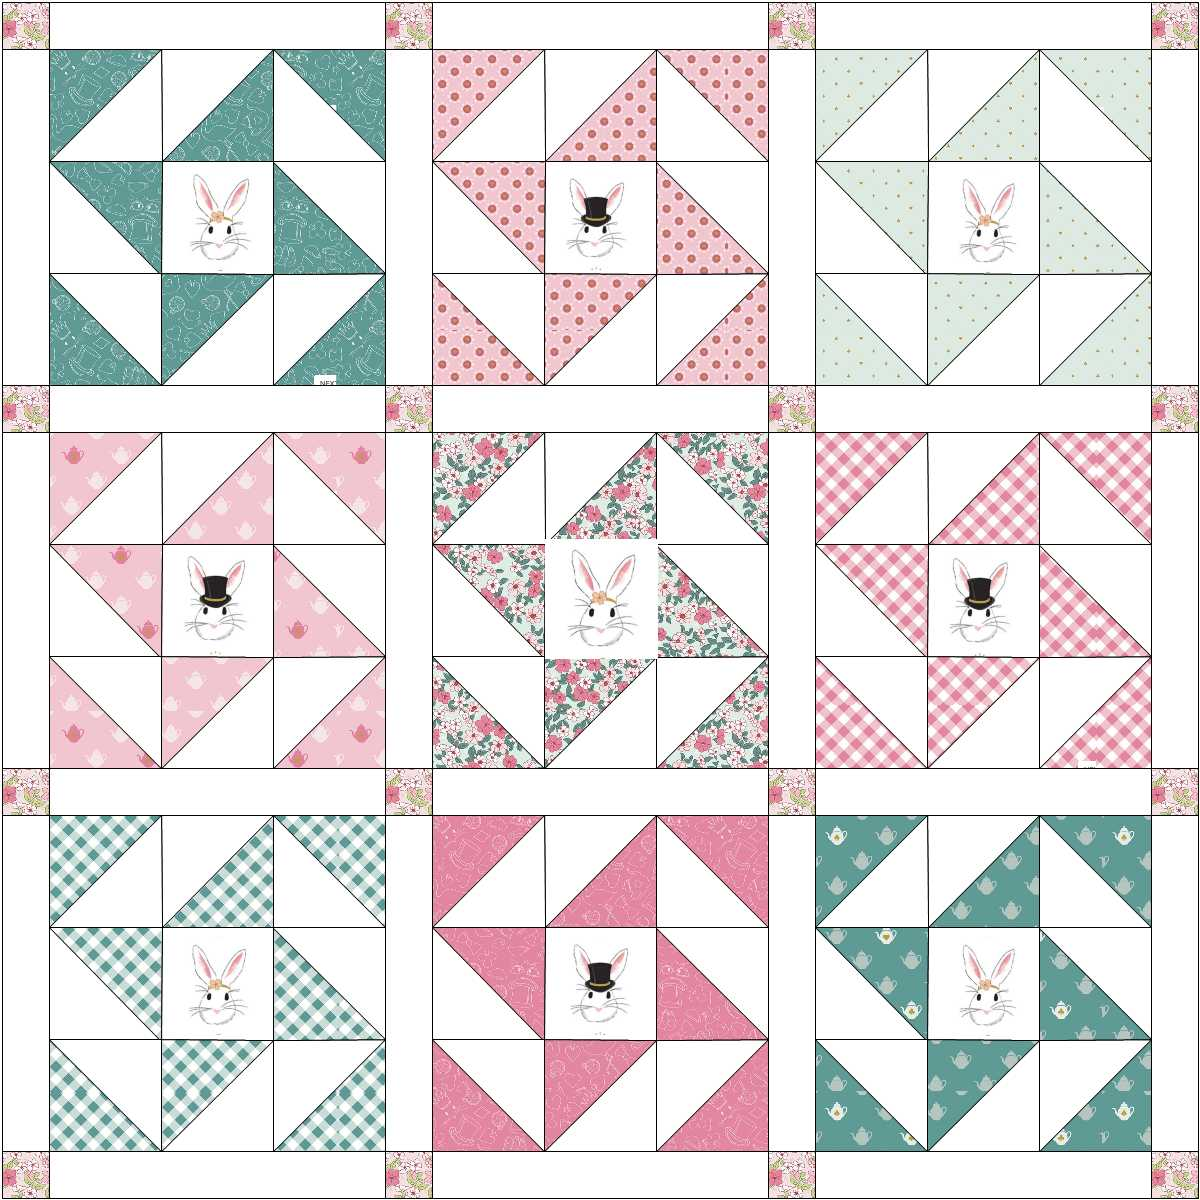 wonderland 2 quilt layout